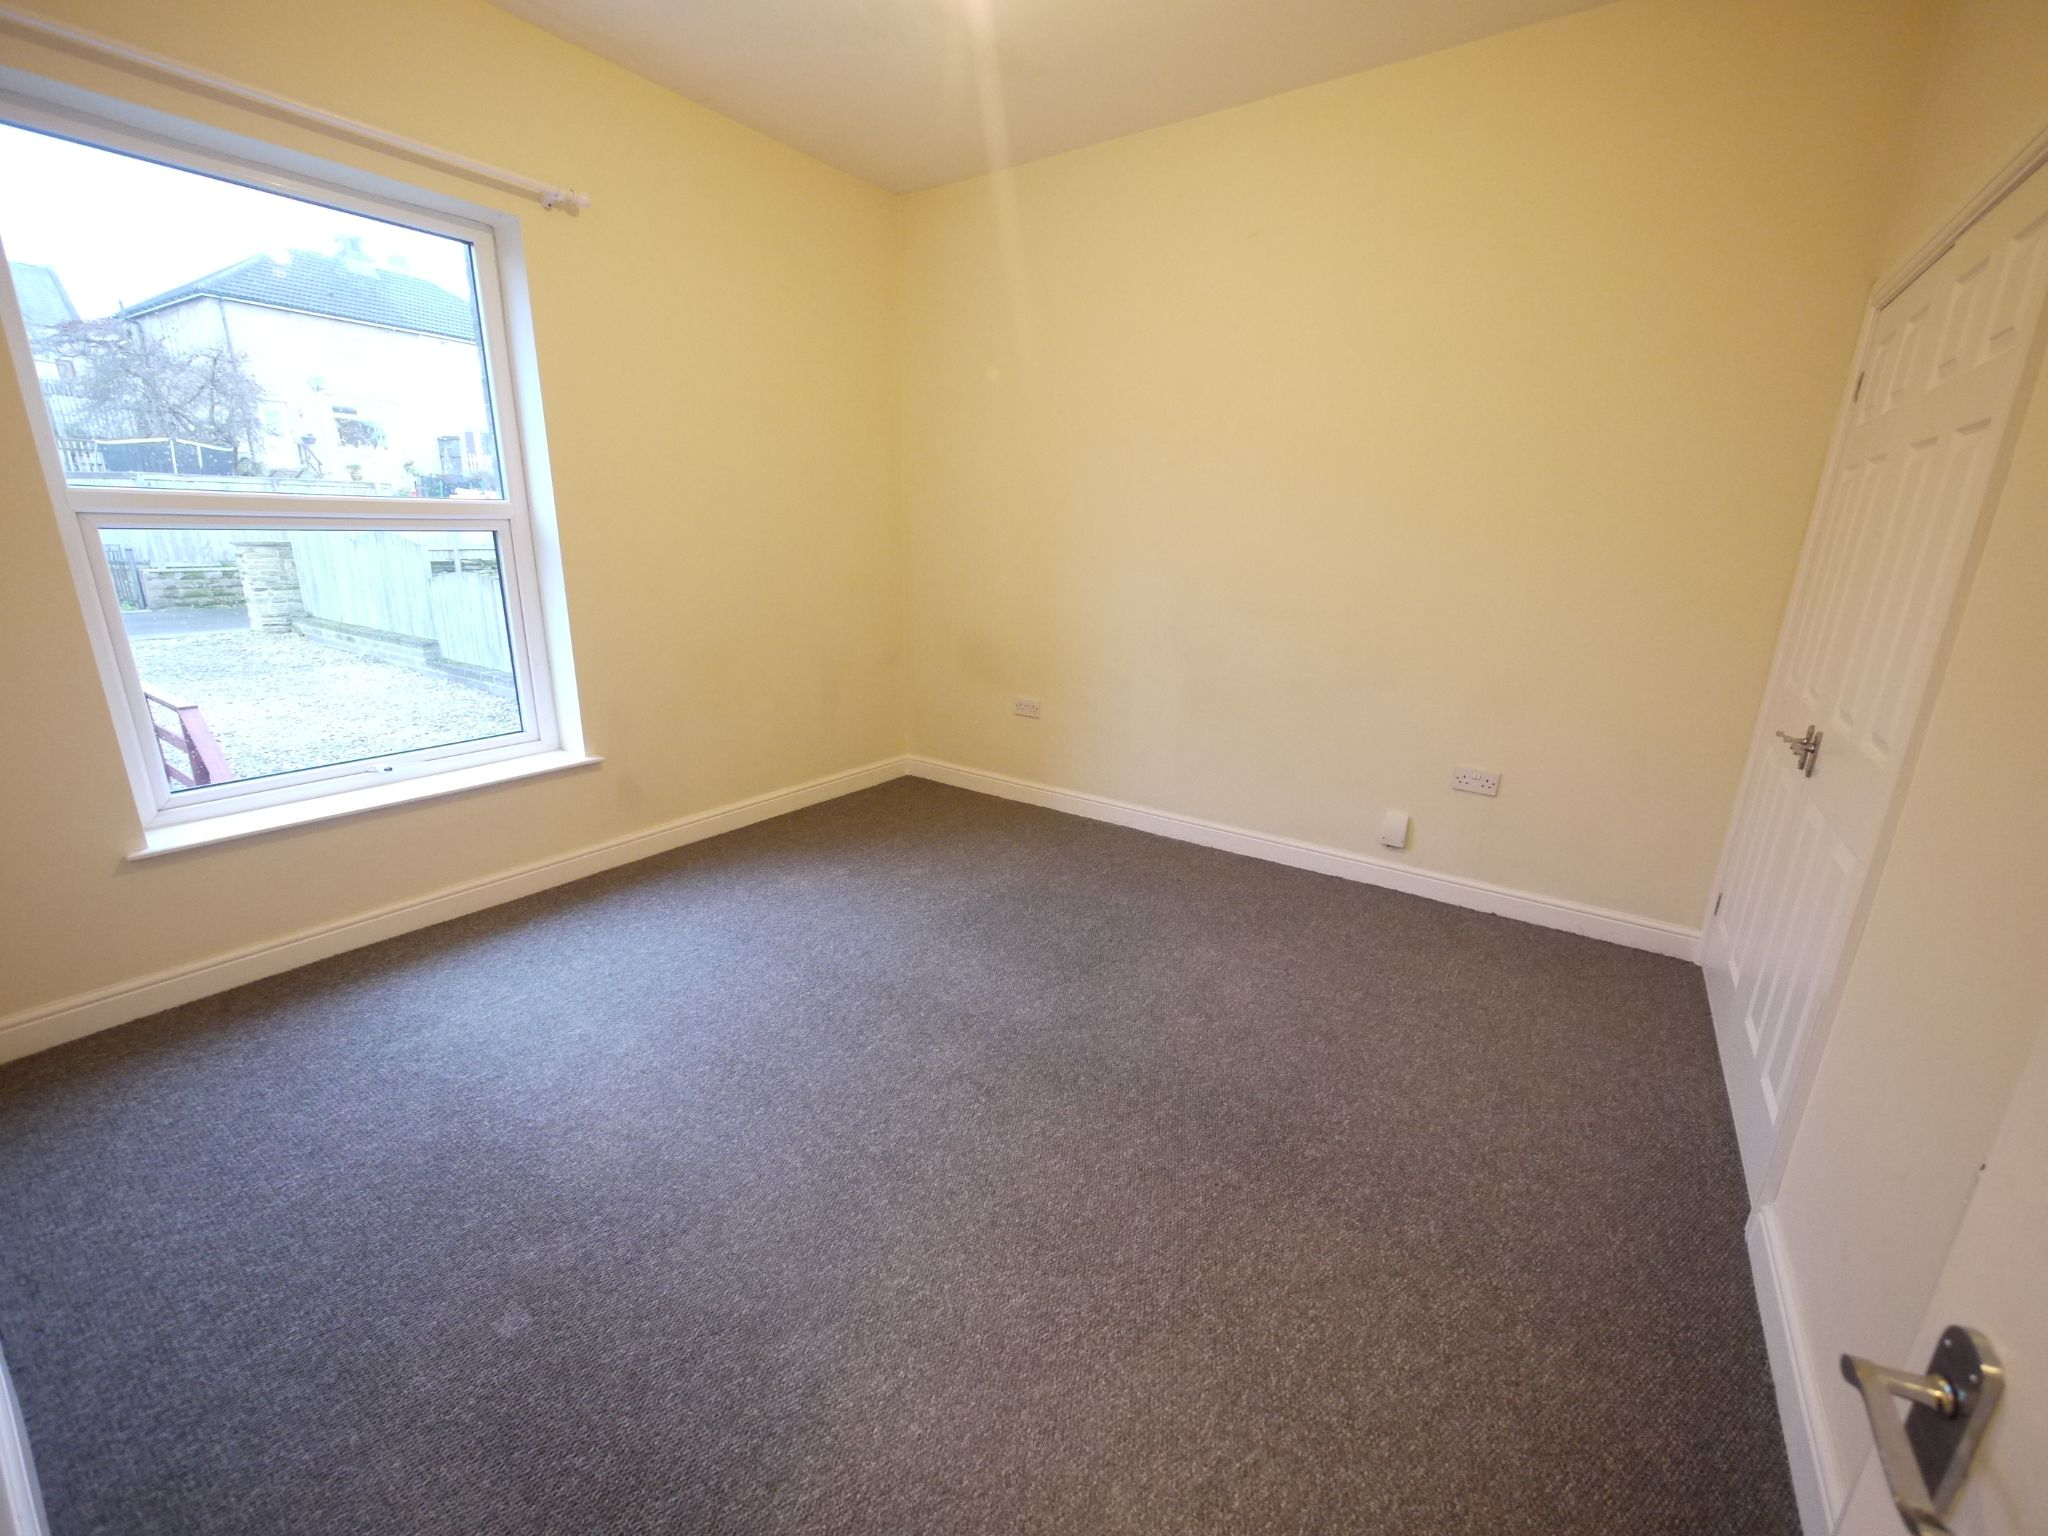 2 bedroom mid terraced house SSTC in Brighouse - Photograph 7.